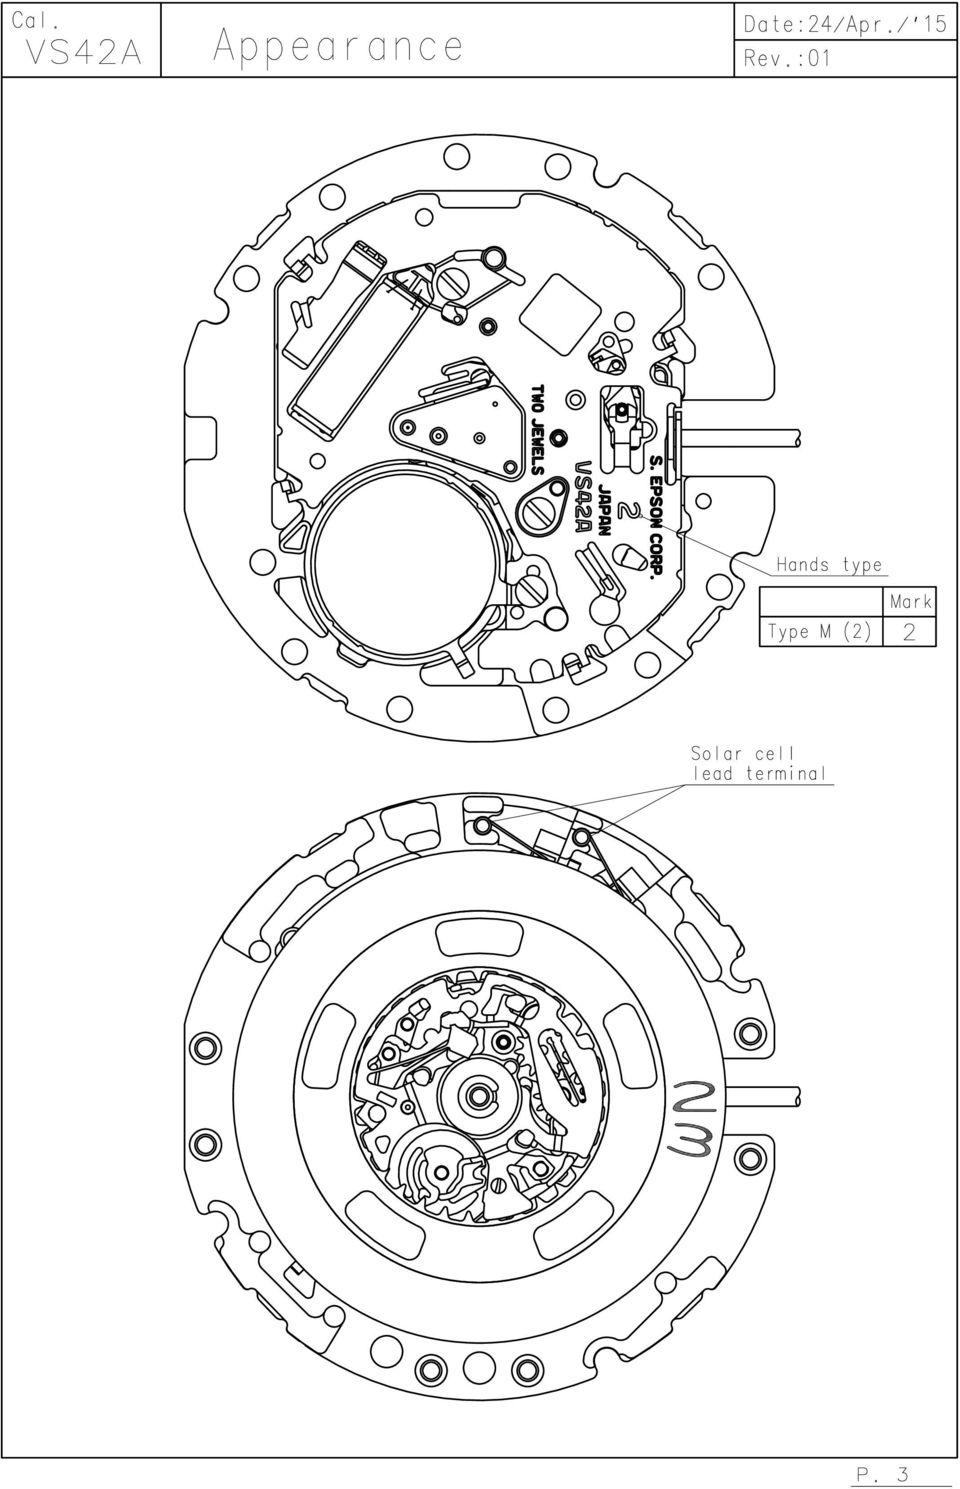 Cal Vs42a Solar Series 11 1 Mm Approx 6 Months 286mm Watch Bendix Ec 30 Wiring Diagram 5